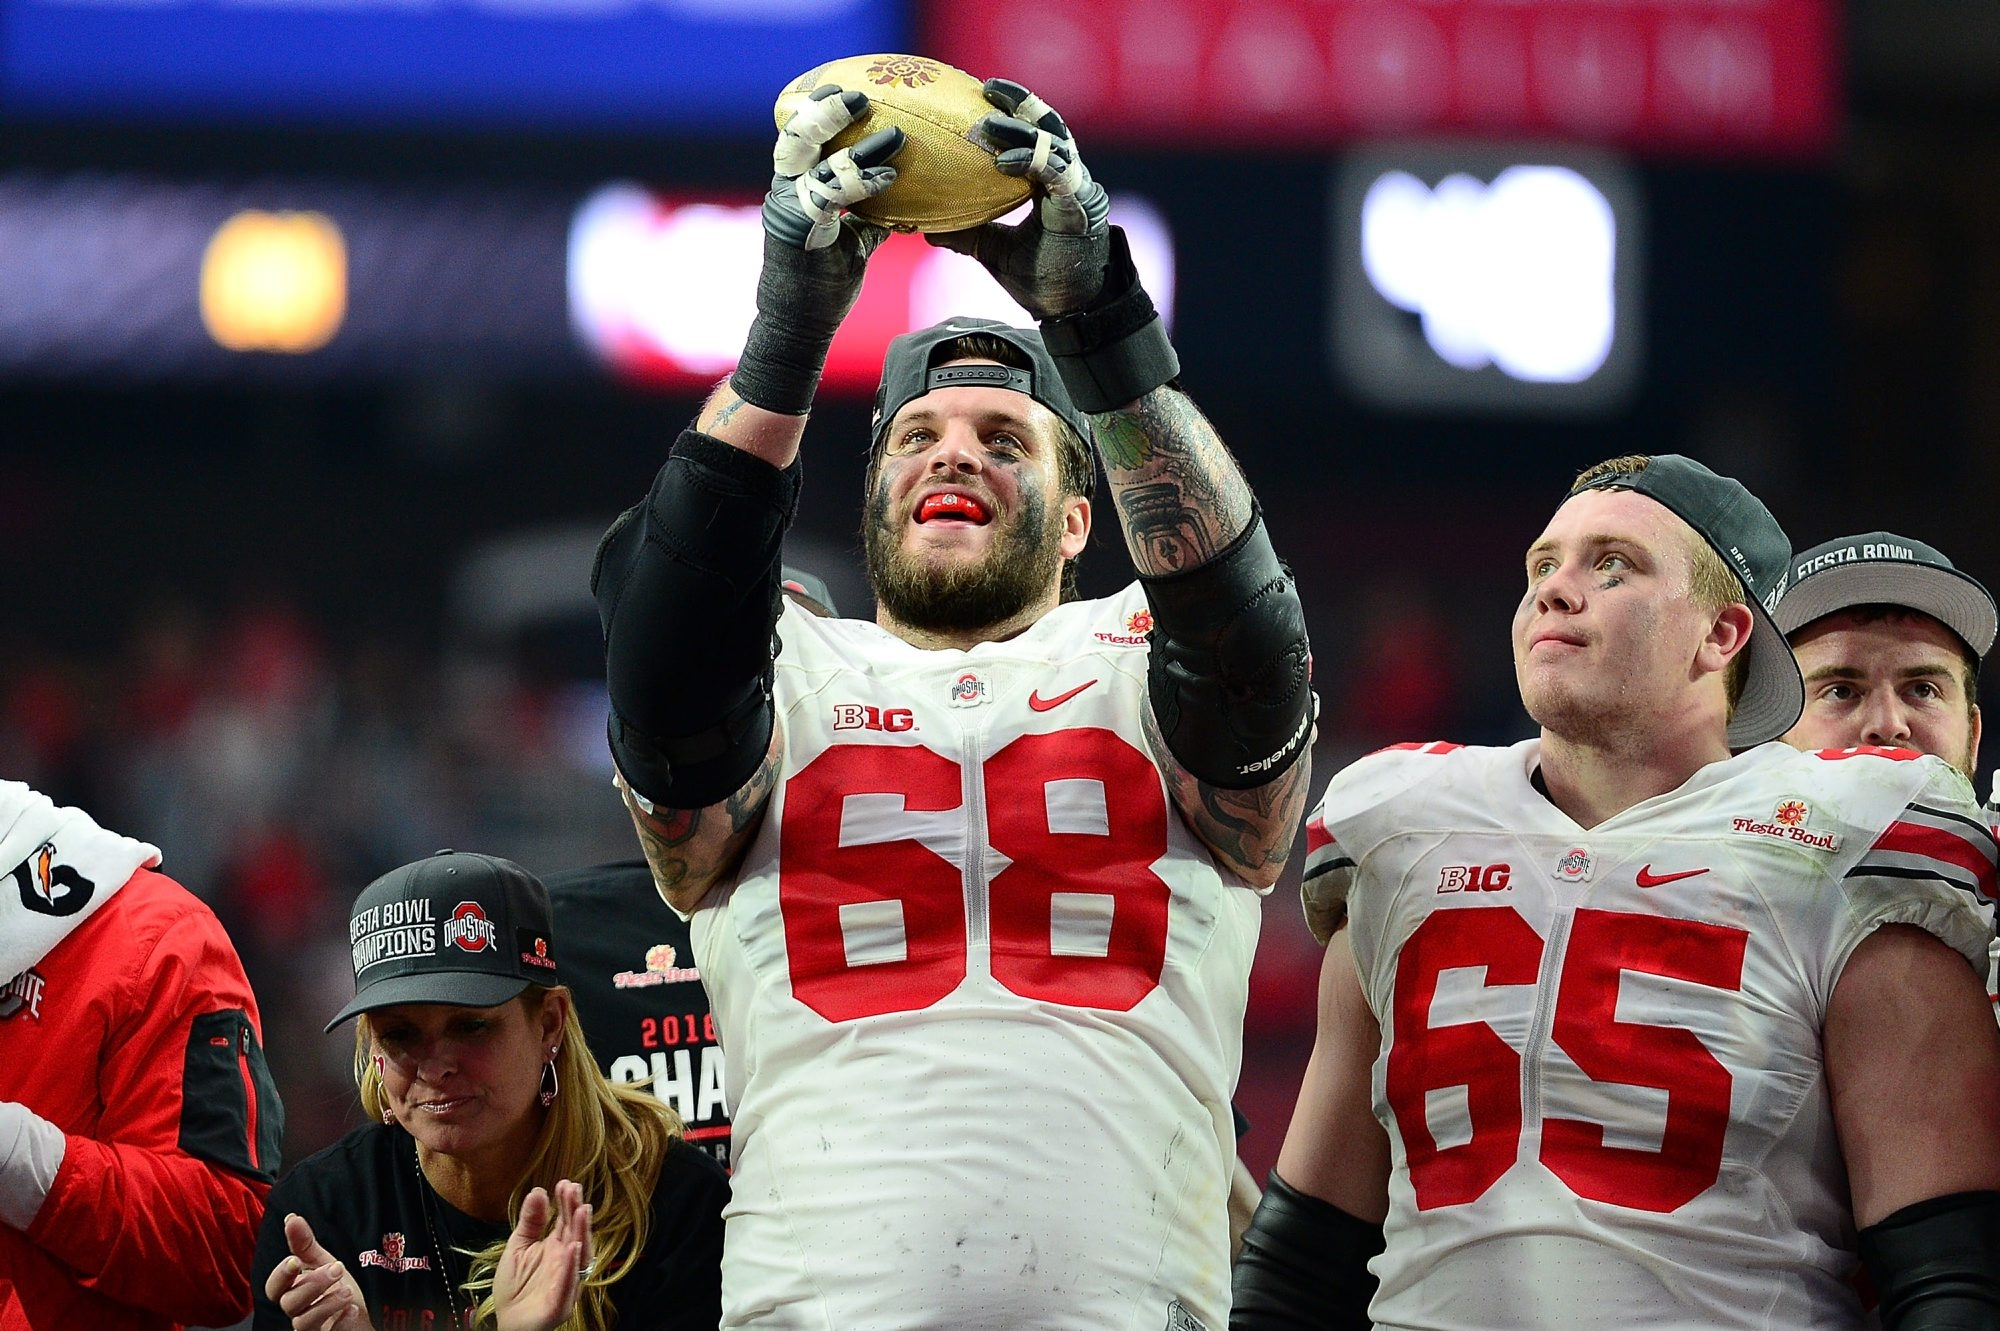 Tackle Taylor Decker (68) of Ohio State was the Big Ten offensive lineman of the year in 2015. He's known for his strong leadership traits.